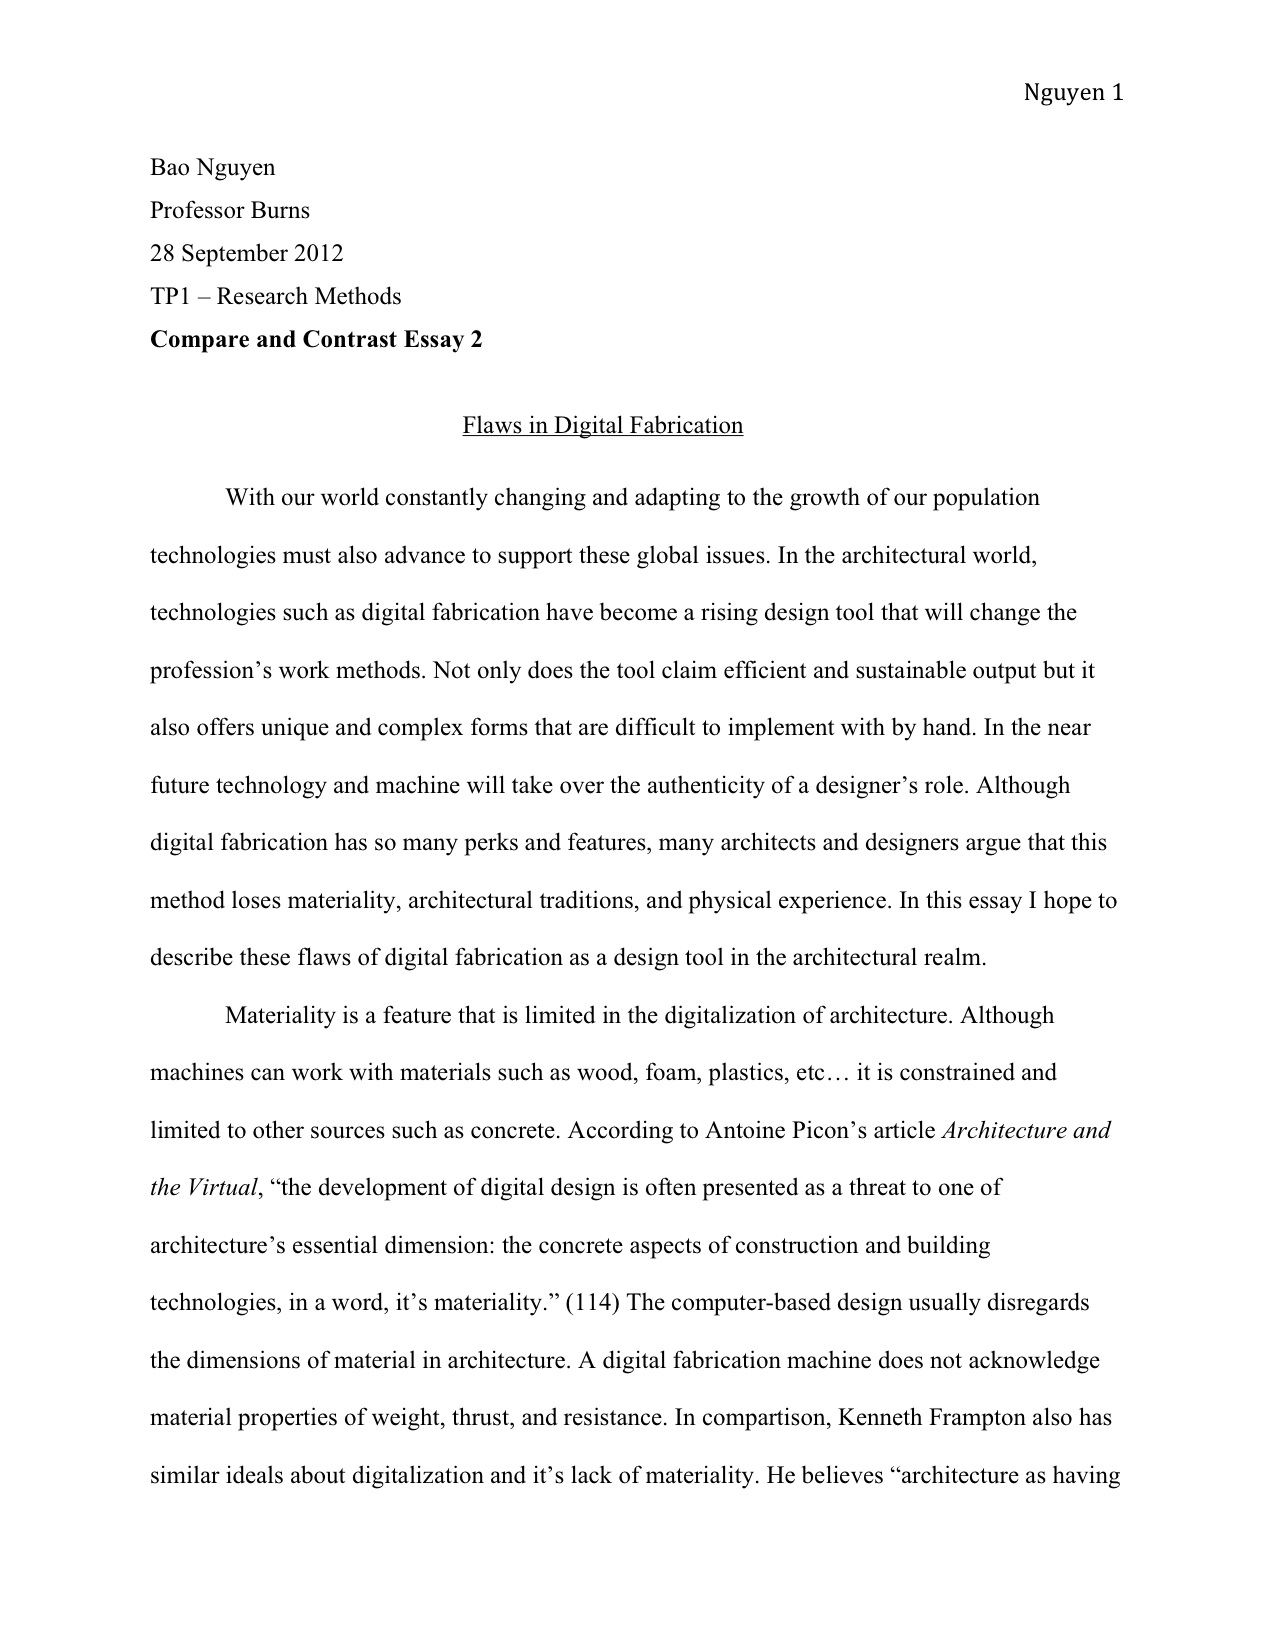 007 Essay Example Good Hooks For Essays Tp1 3 Unforgettable About Culture Heroes Full